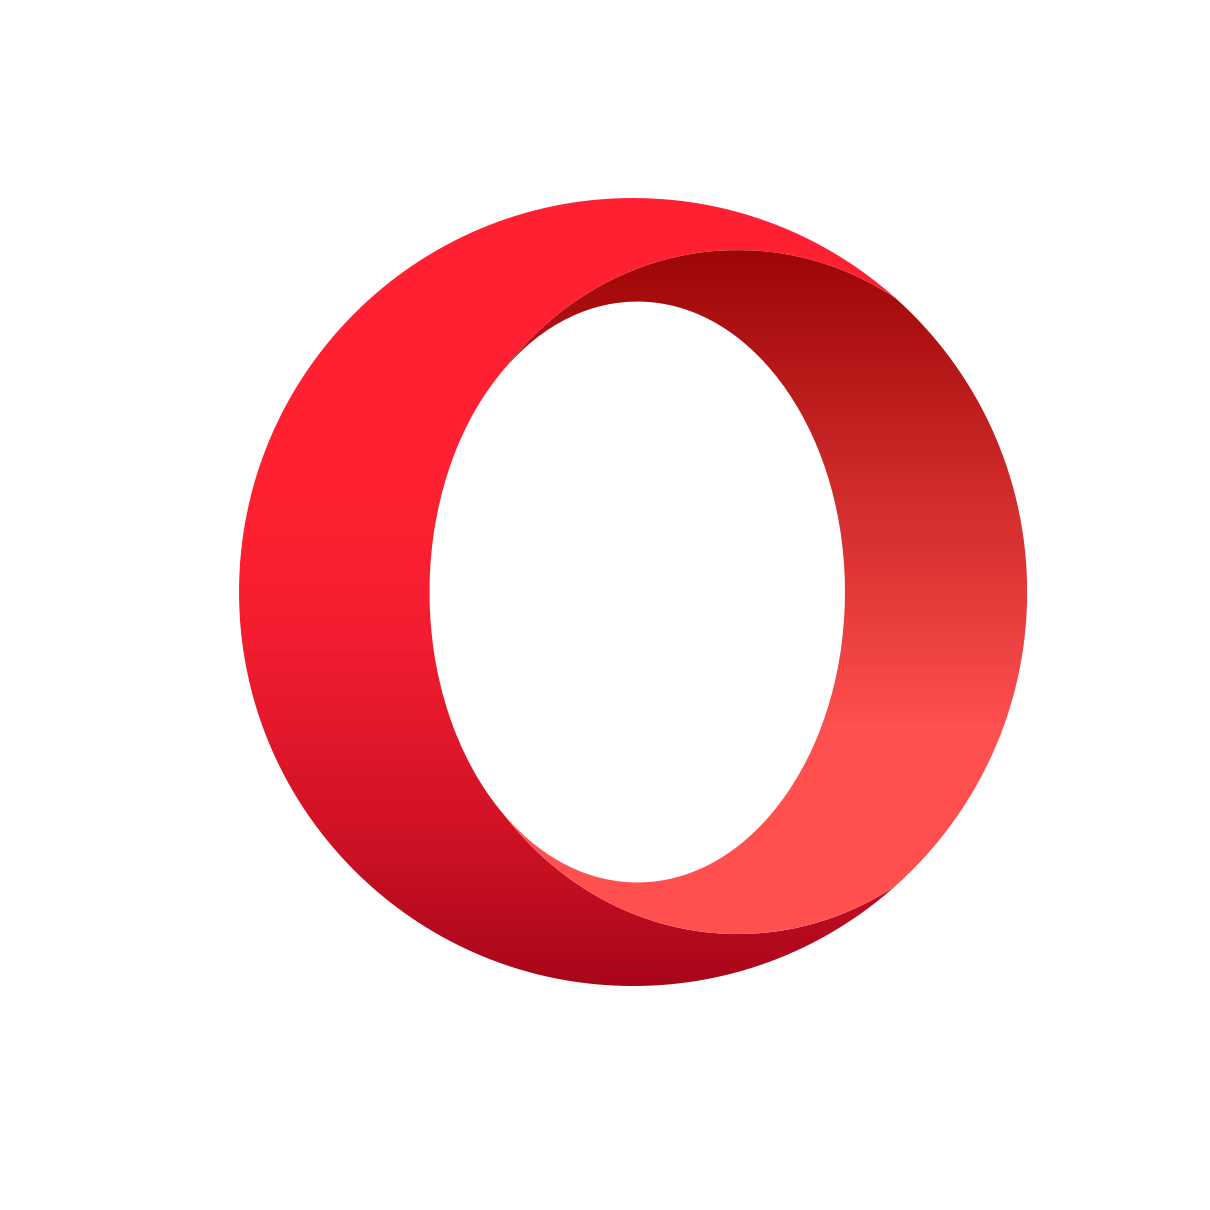 Browser Opera How To Fix Vpn Issues On The Opera Browser